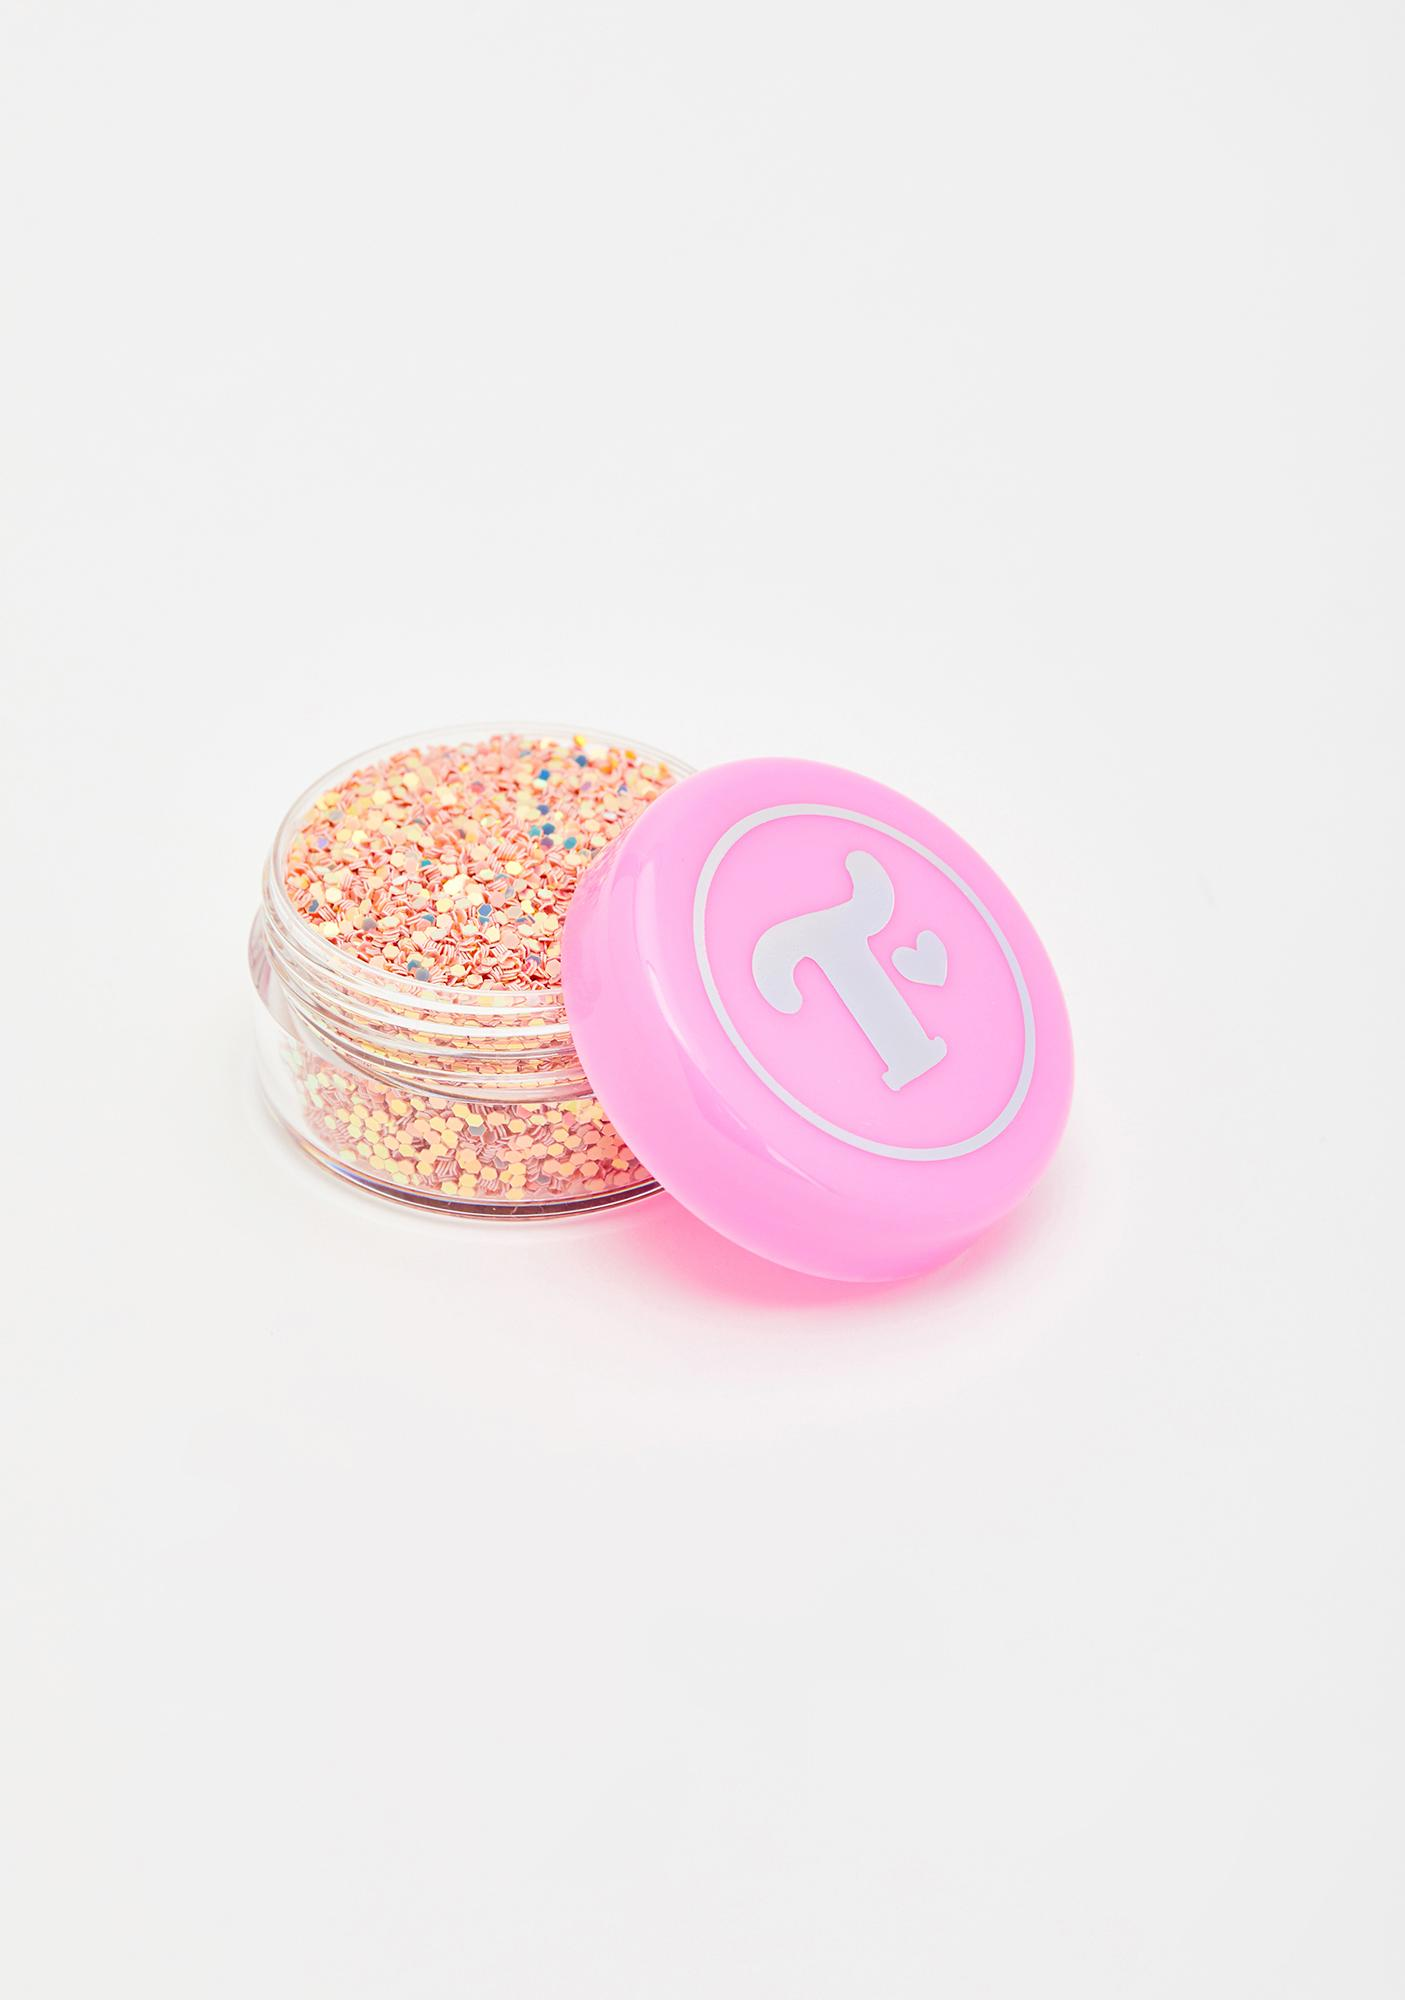 Trixie Cosmetics Melon Baller Sprinkles Loose Glitter